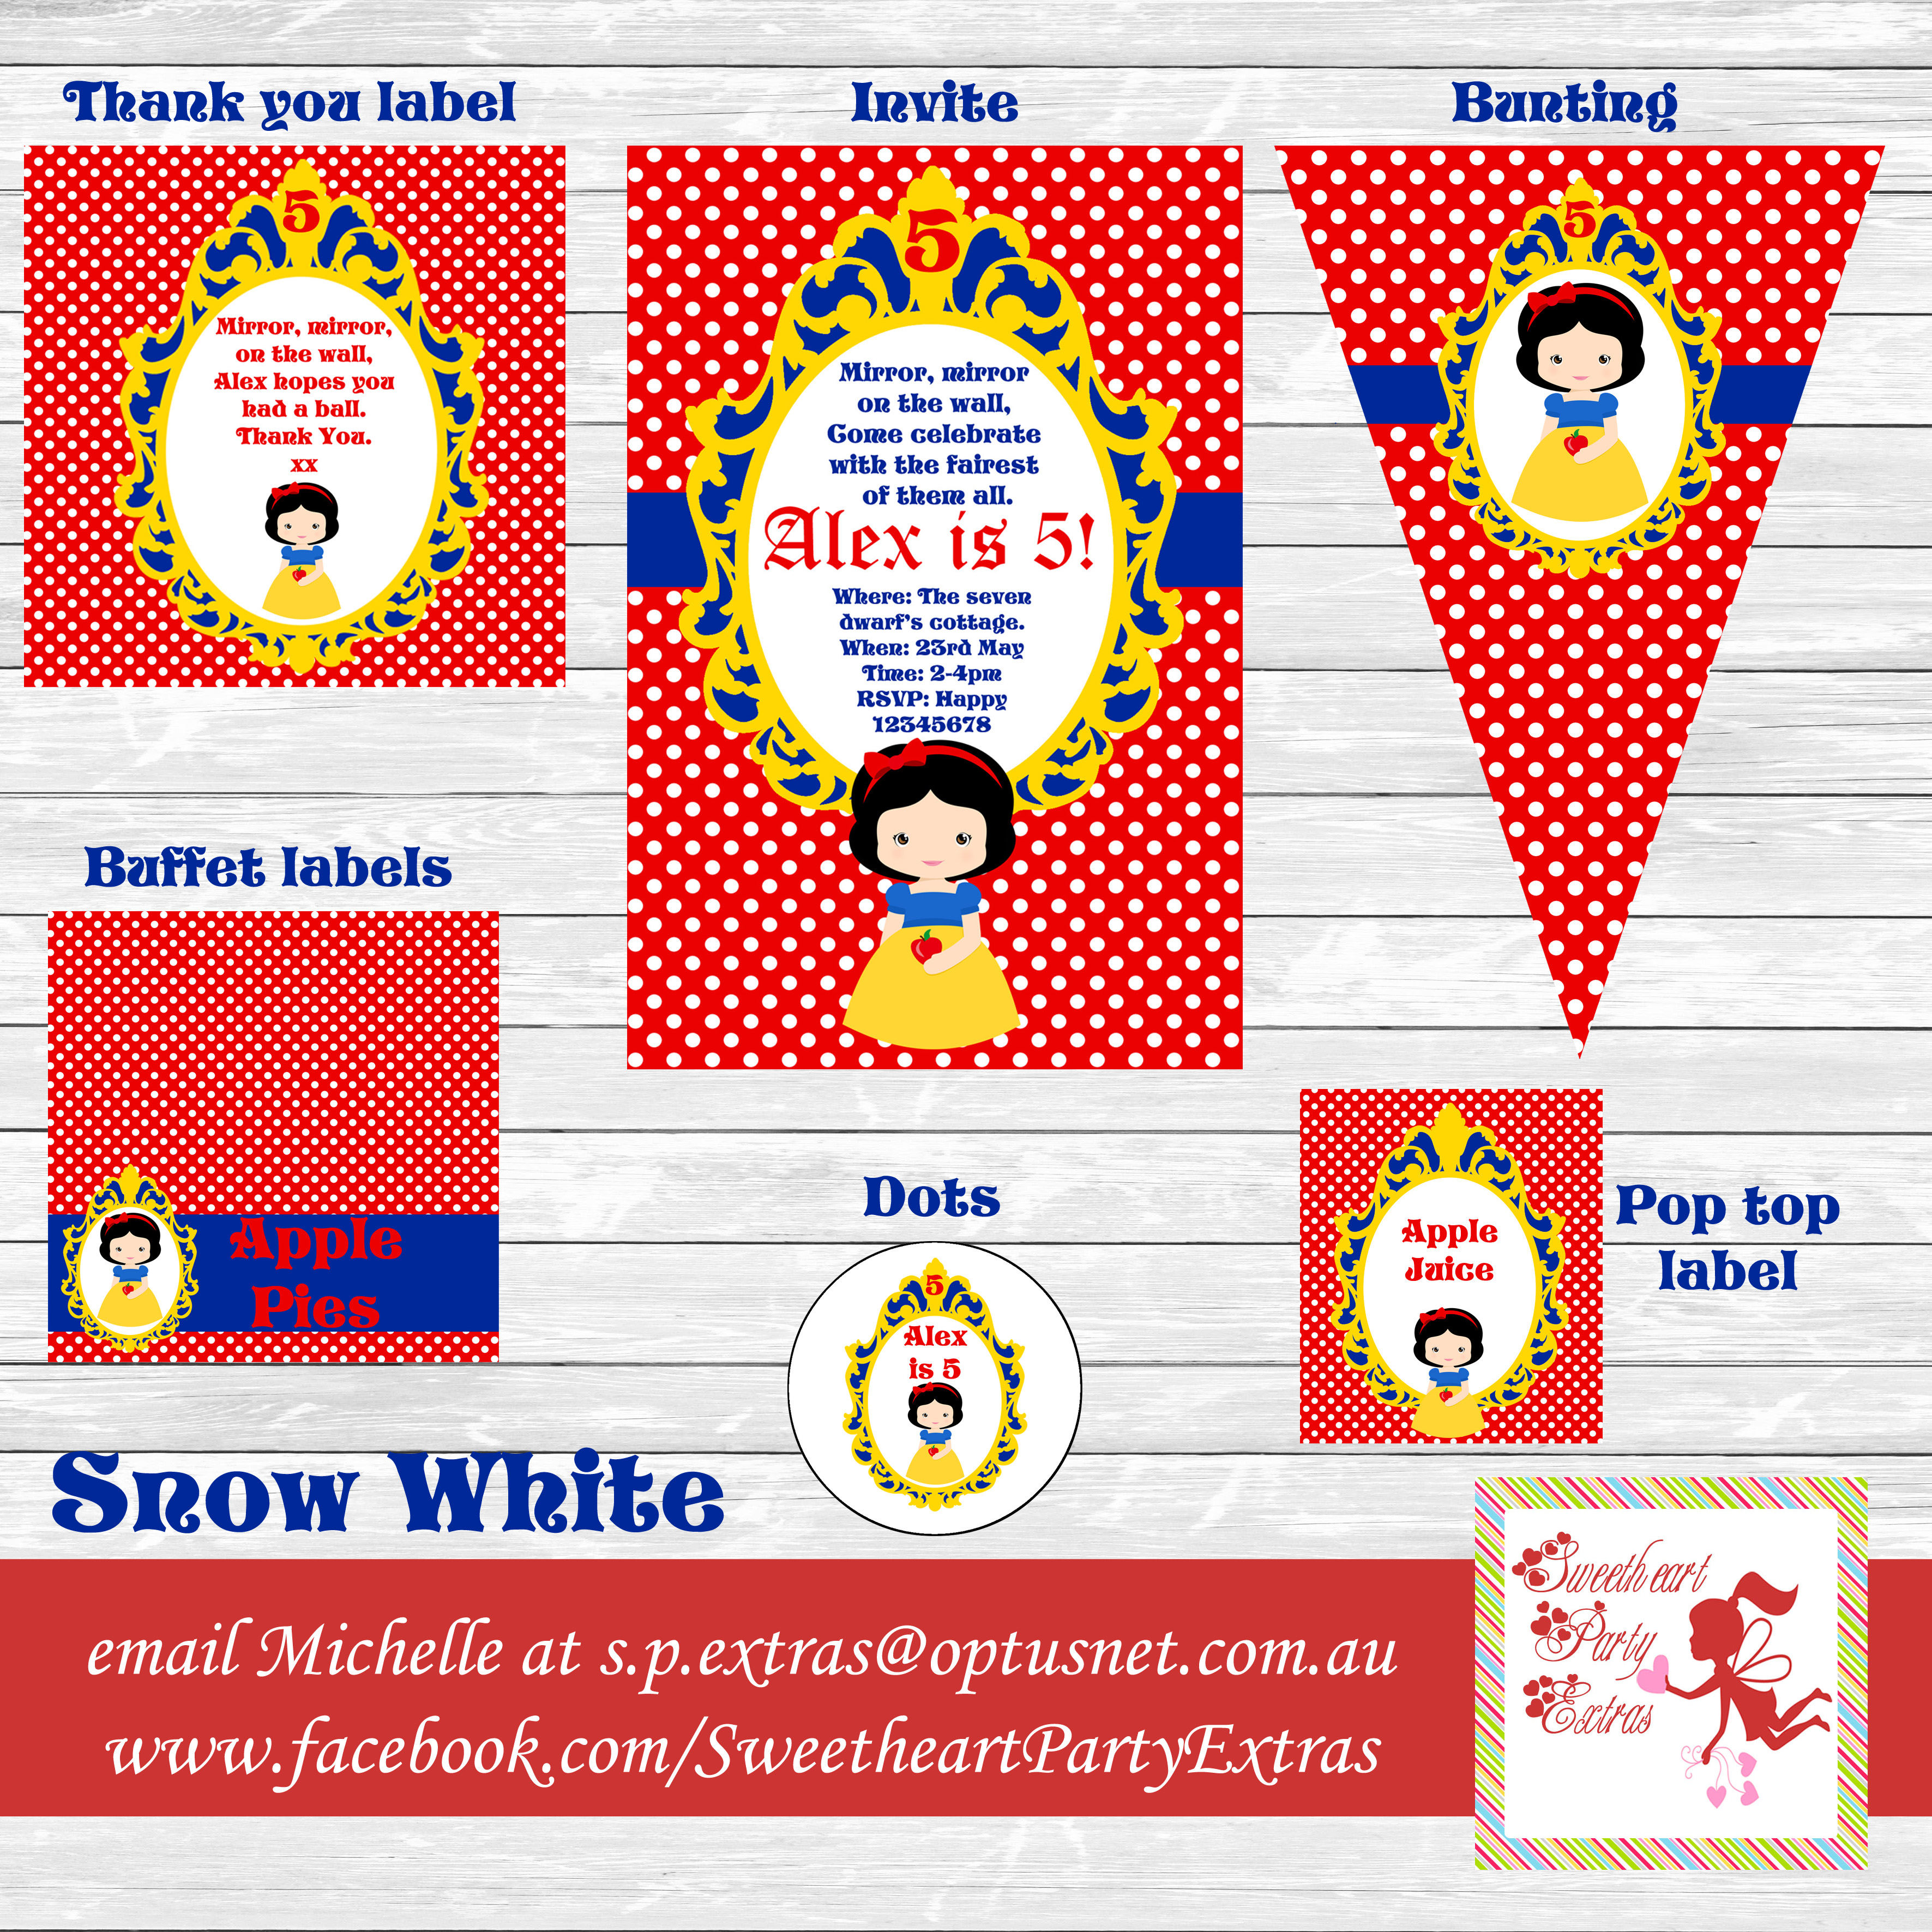 photo about Snow White Invitations Printable identified as Snow White topic Archives - Lifes Minor Get together